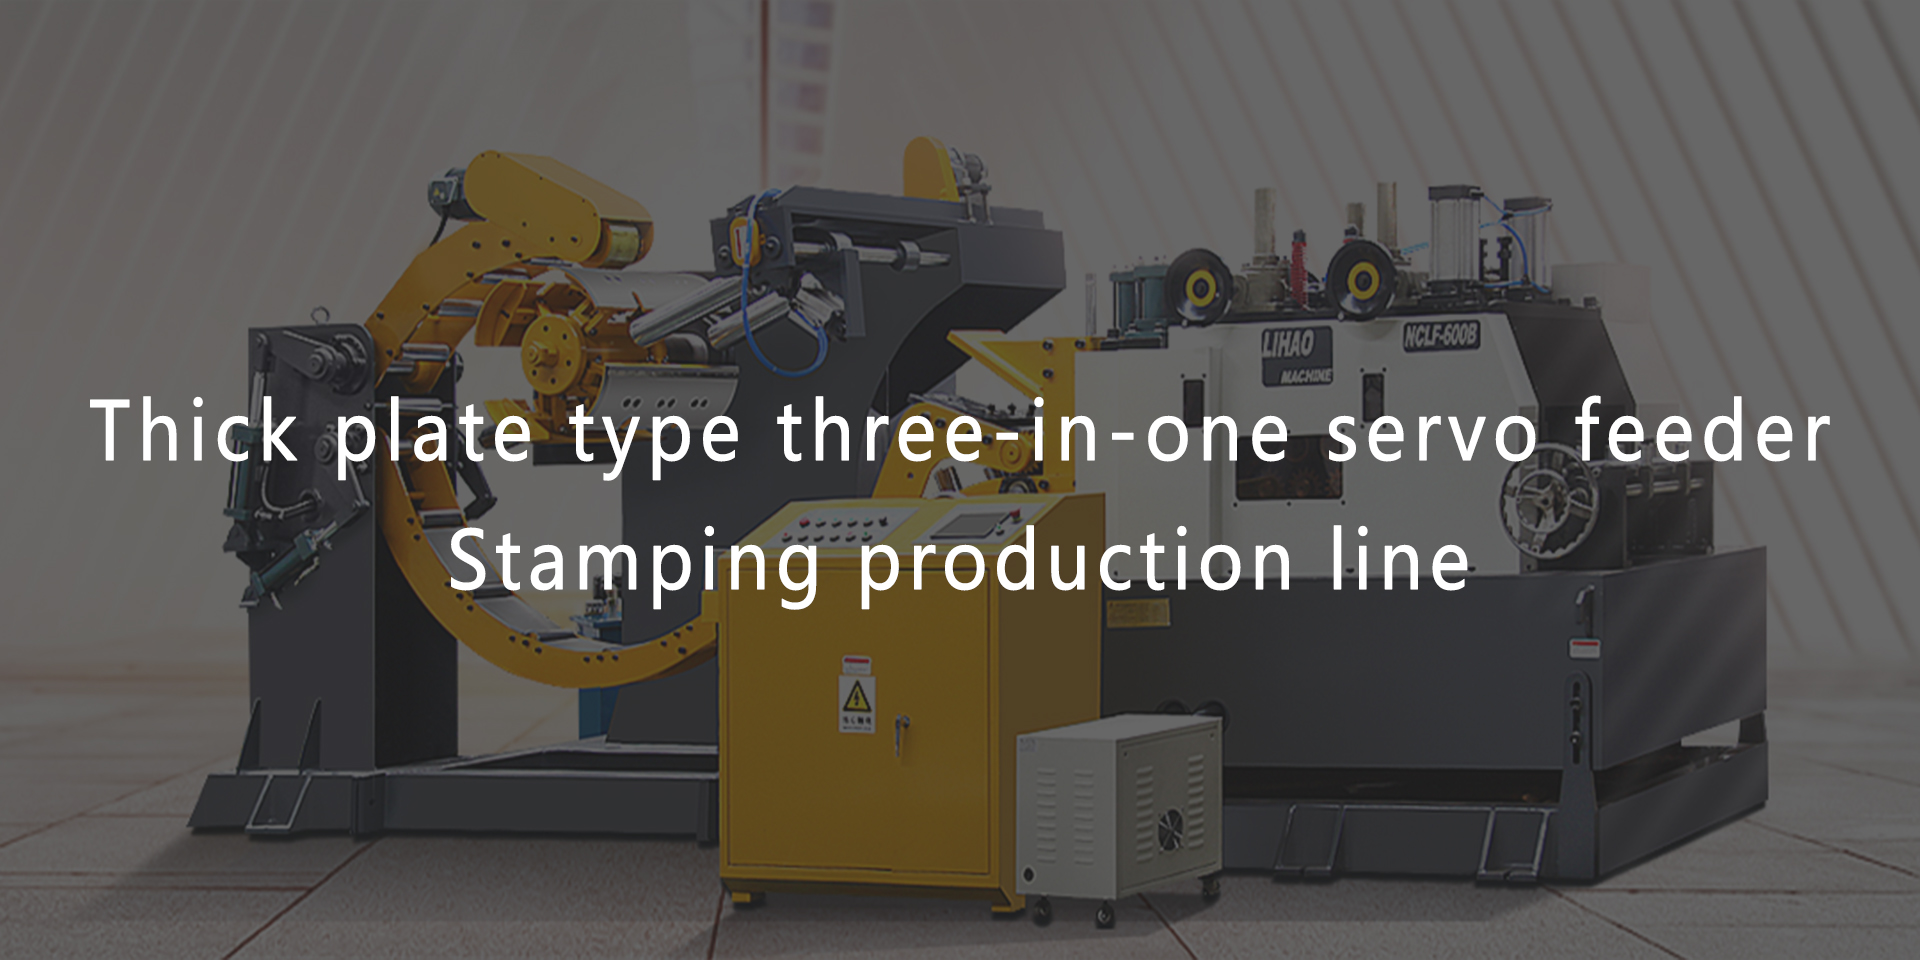 Thick plate type three-in-one servo feeder